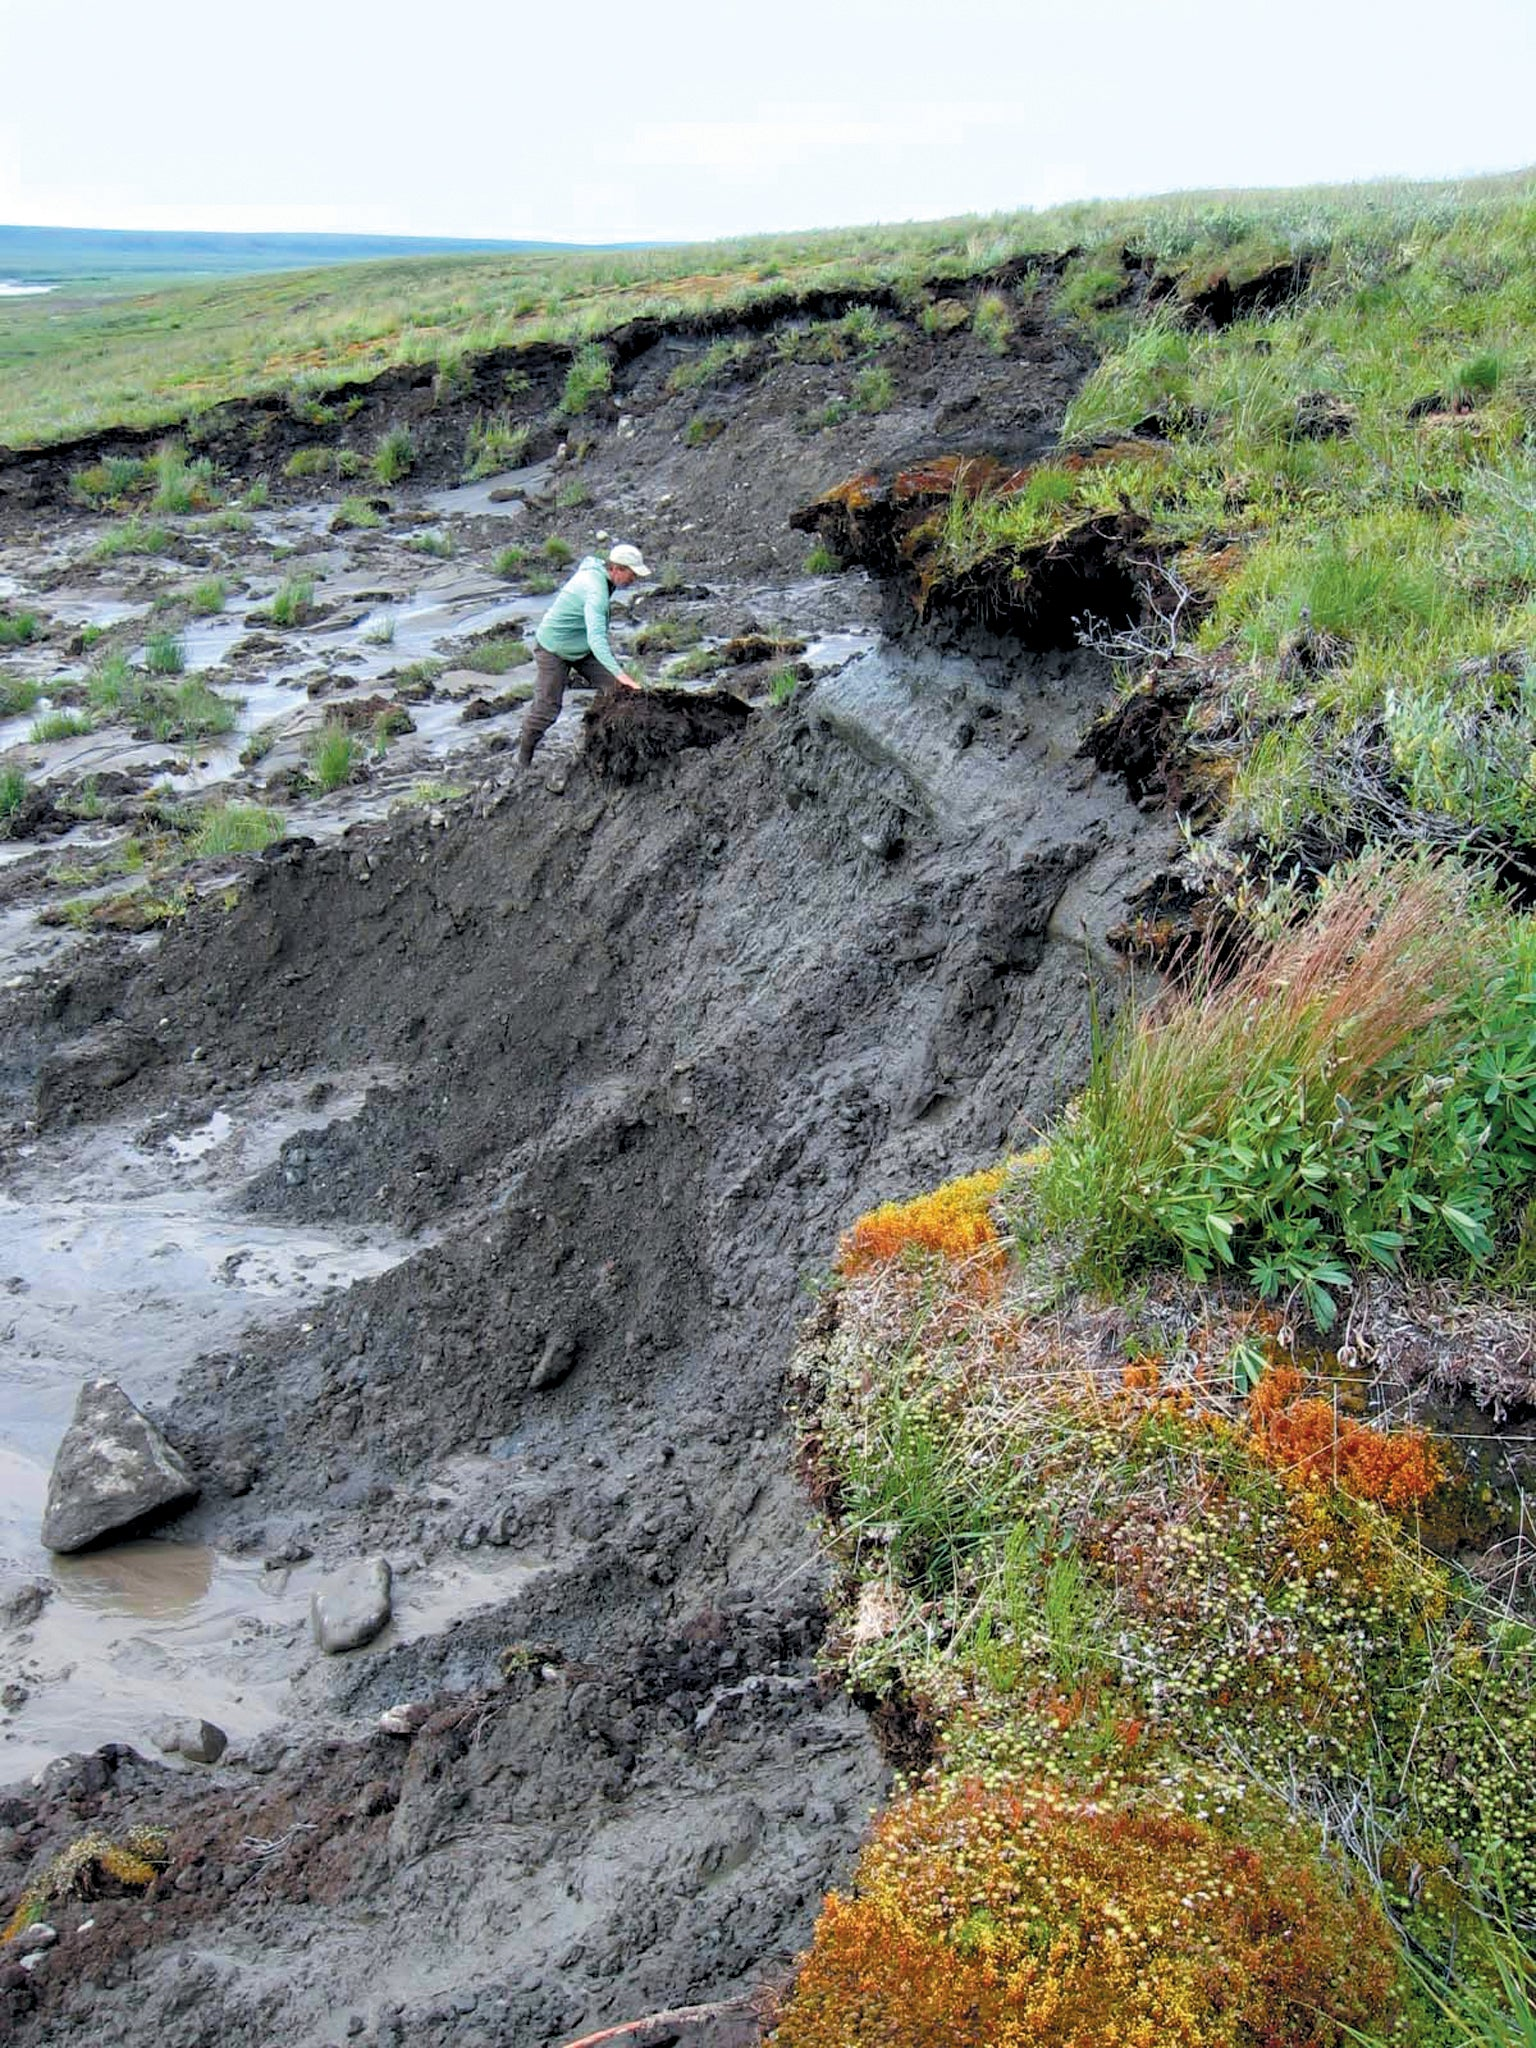 Sinkholes exposing permafrost and ice wedges.